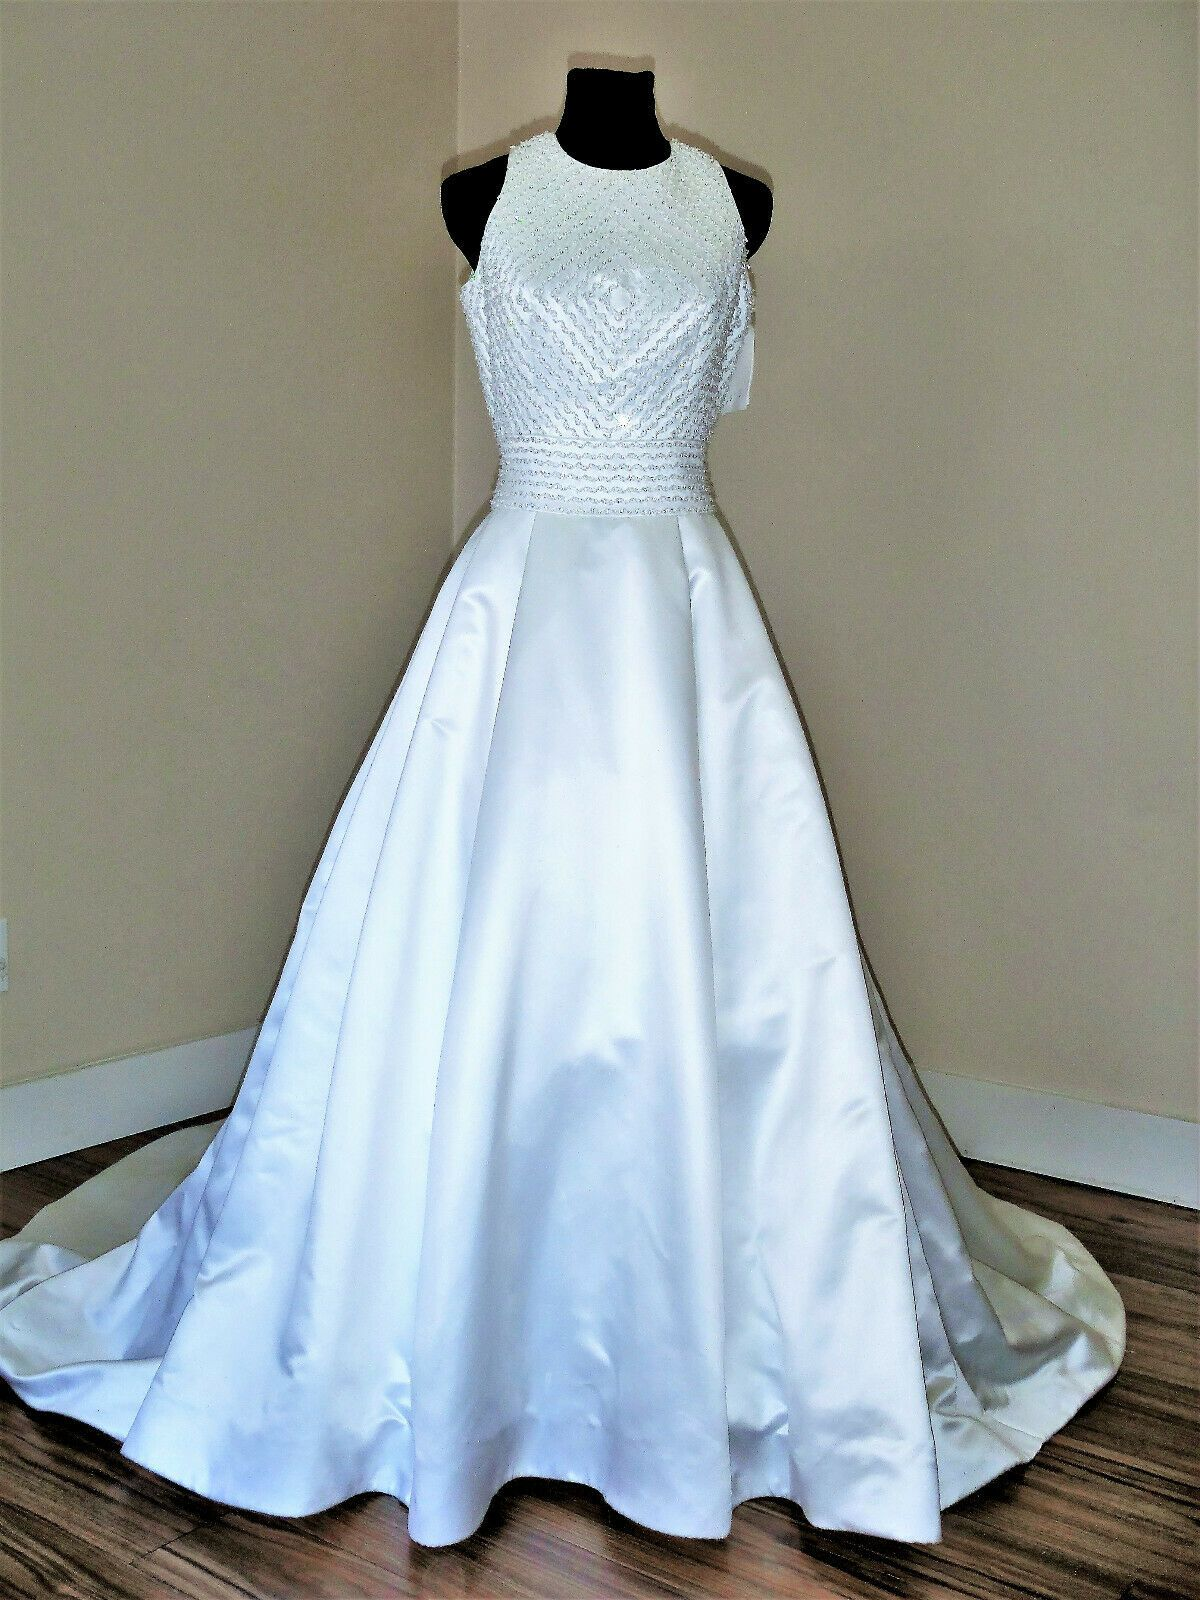 Scaasi By Eva Forsyth Style 2253b Size 10 White Halter Open Back